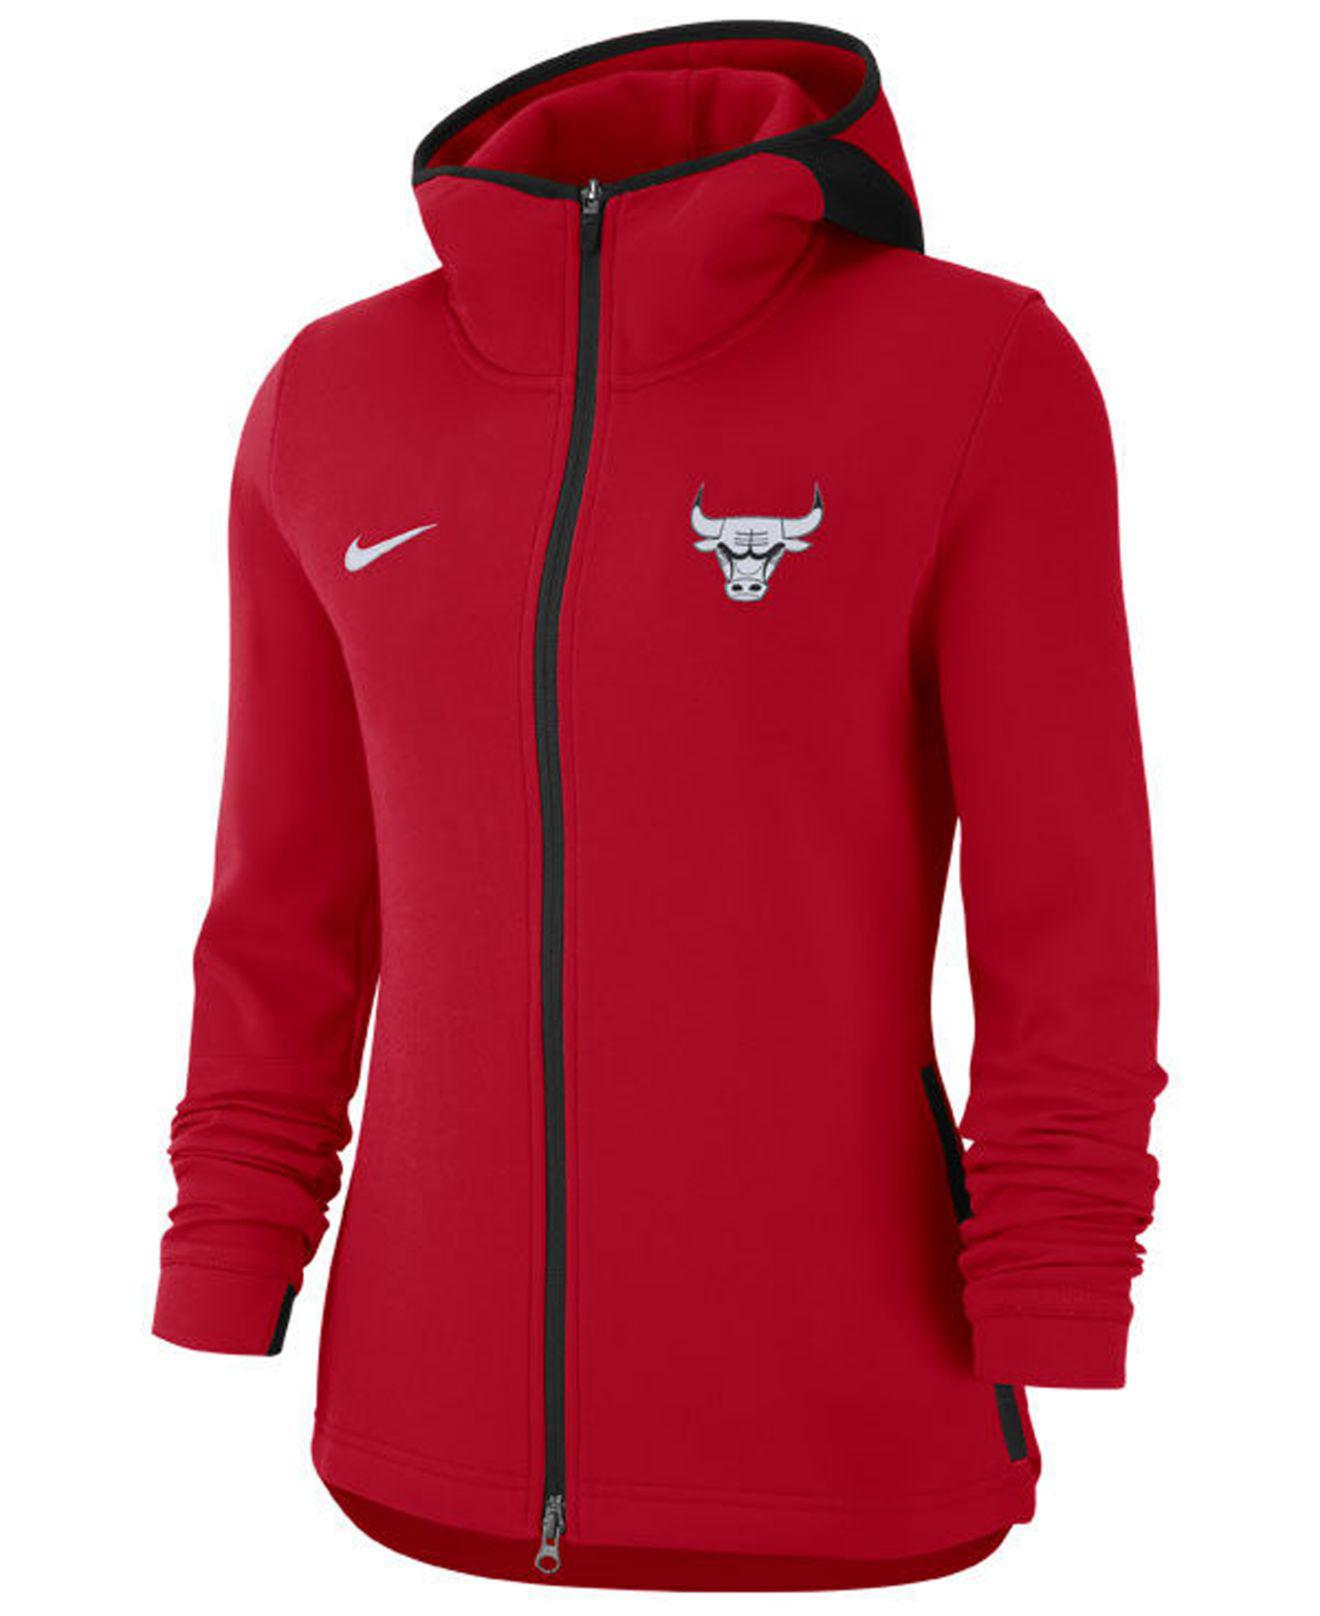 36724be275 Lyst - Nike Chicago Bulls Showtime Full-zip Hoodie in Red